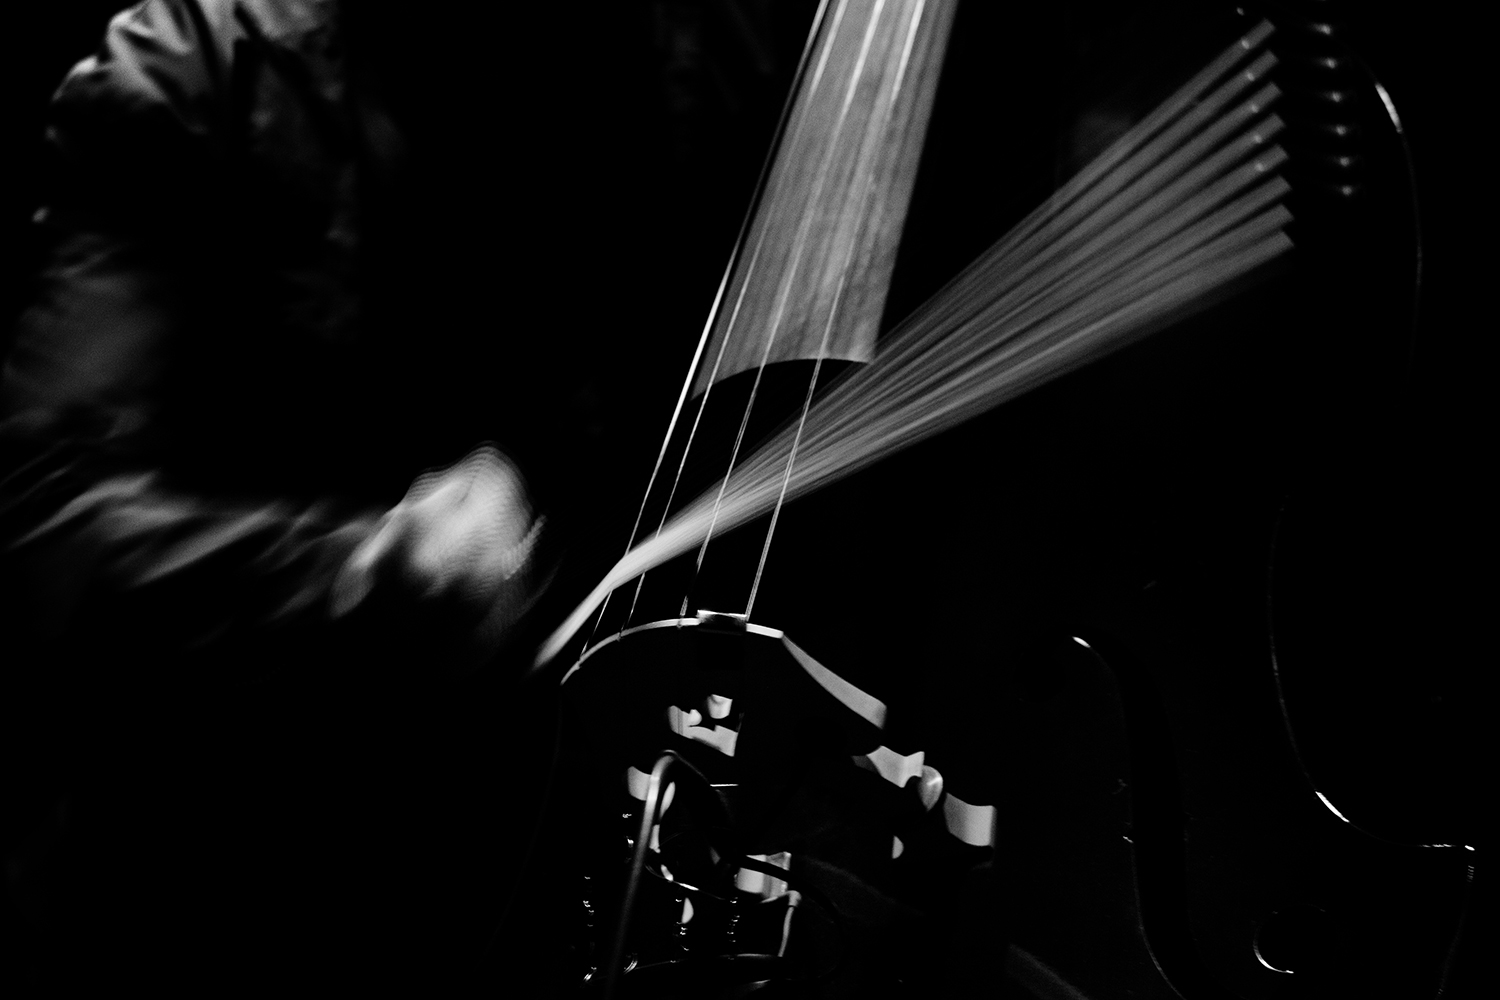 Arnold Dreyblatt & The Orchestra of Excited Strings by Laurent Orseau - Les Ateliers Claus - Brussels, Belgium #13